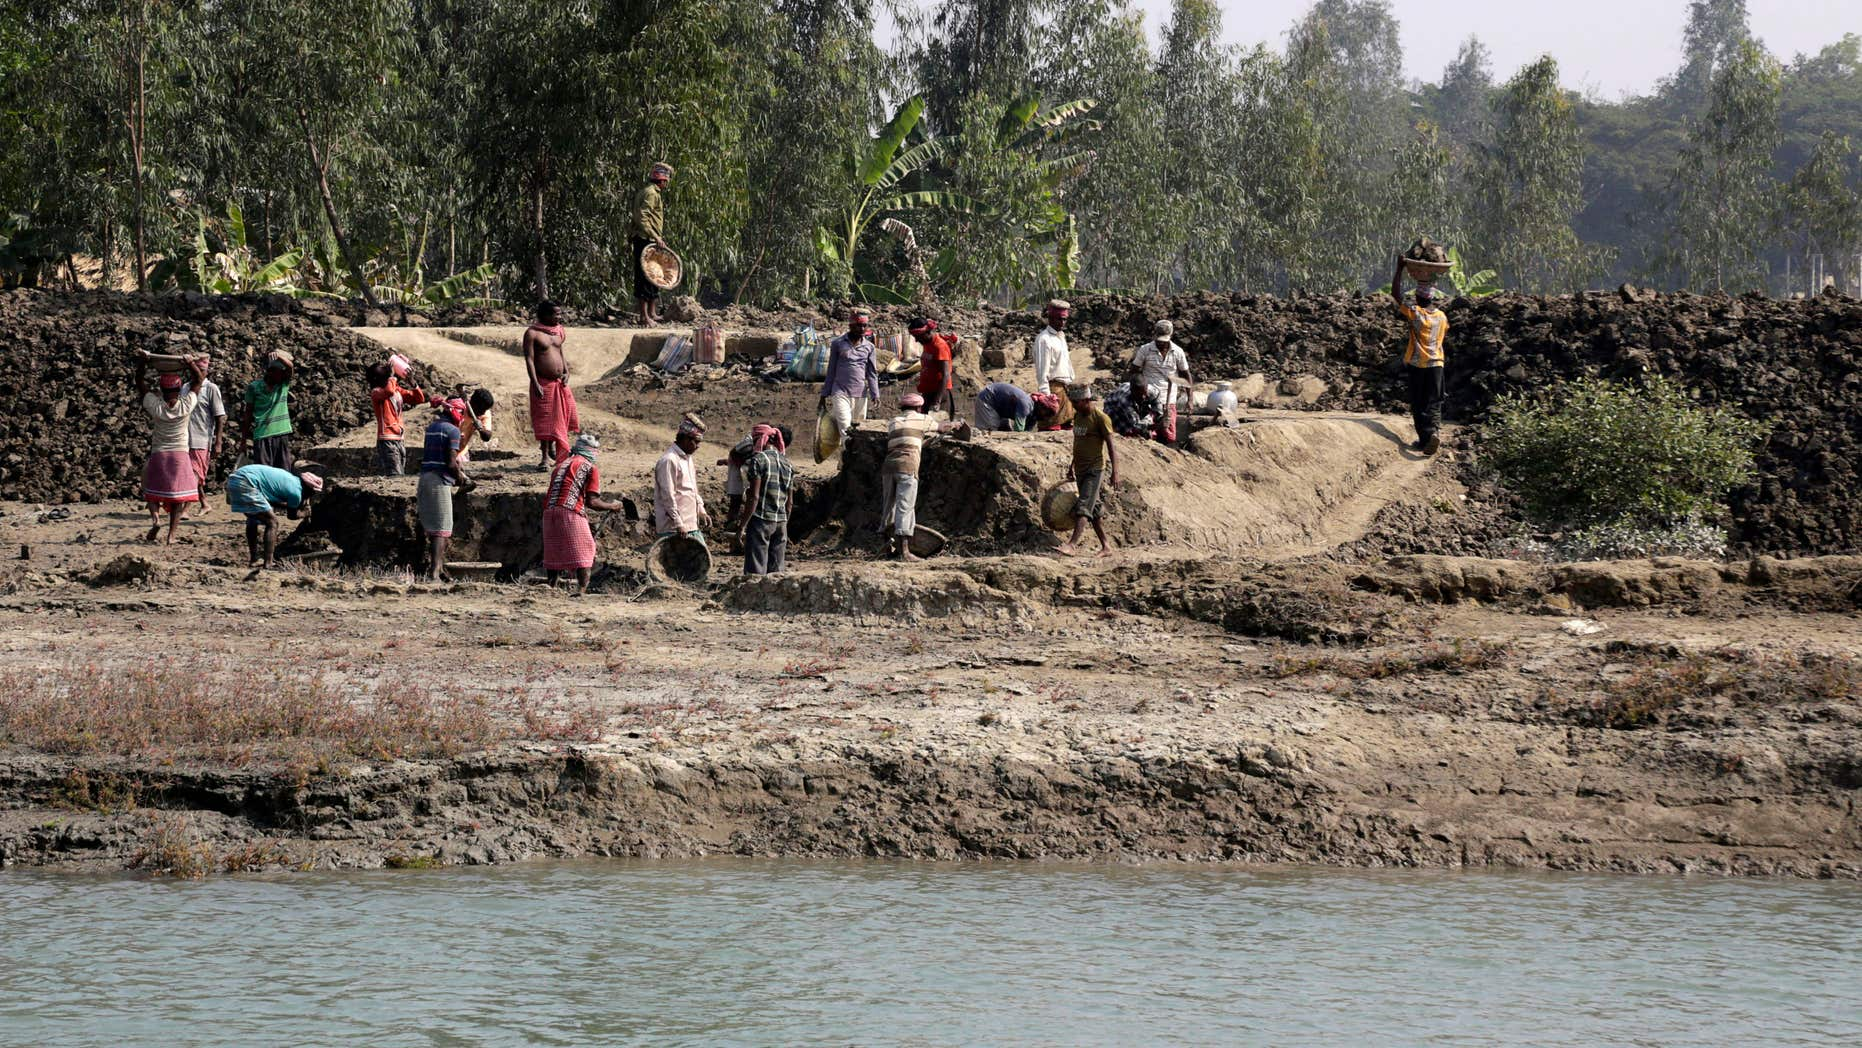 Feb. 2, 2015: Laborers work at an embankment under construction near Sonaga village in the Sundarbans, India.